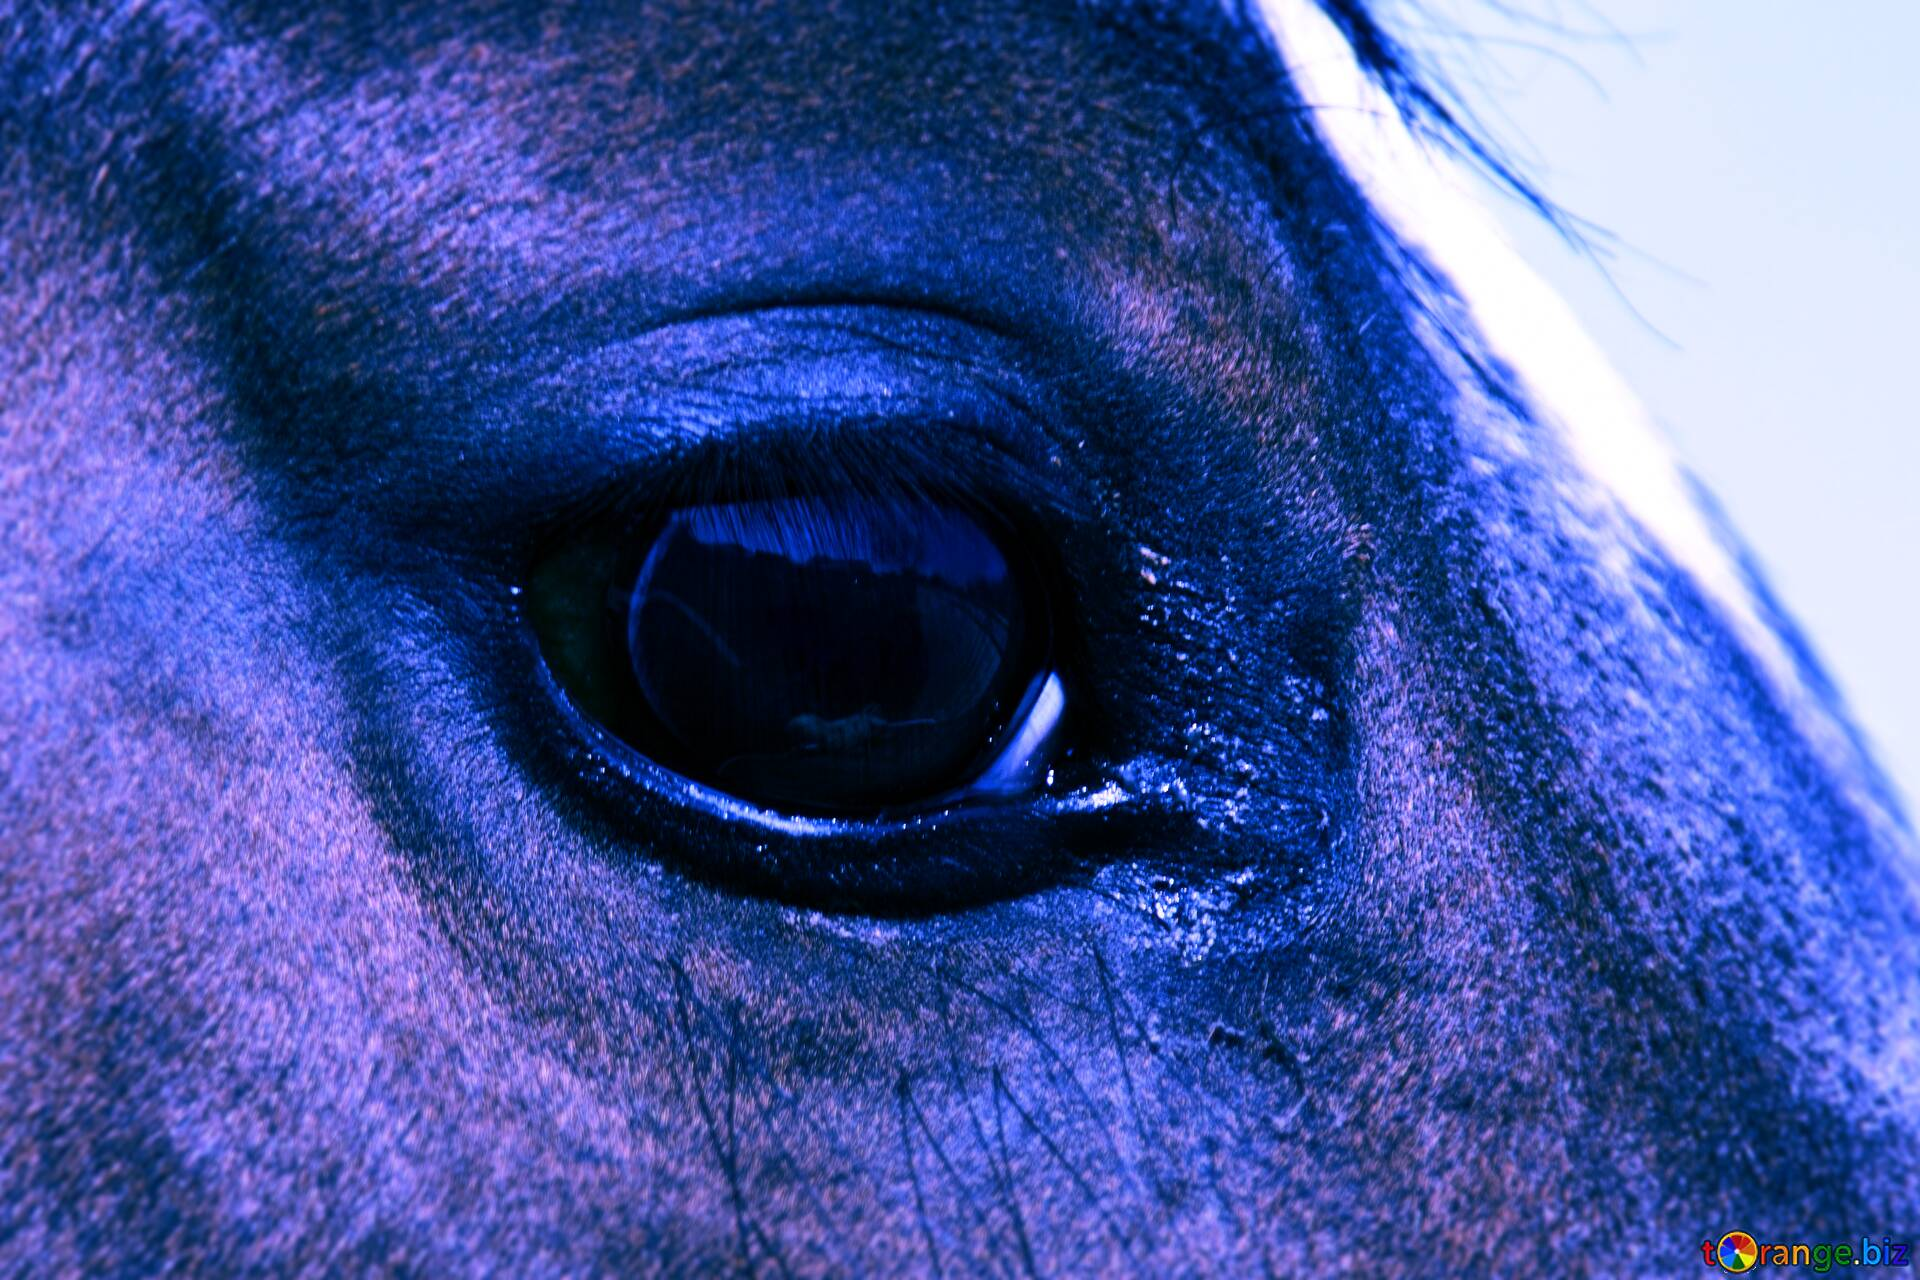 Download Free Picture The Eye Blue Horse On Cc By License Free Image Stock Torange Biz Fx 137642